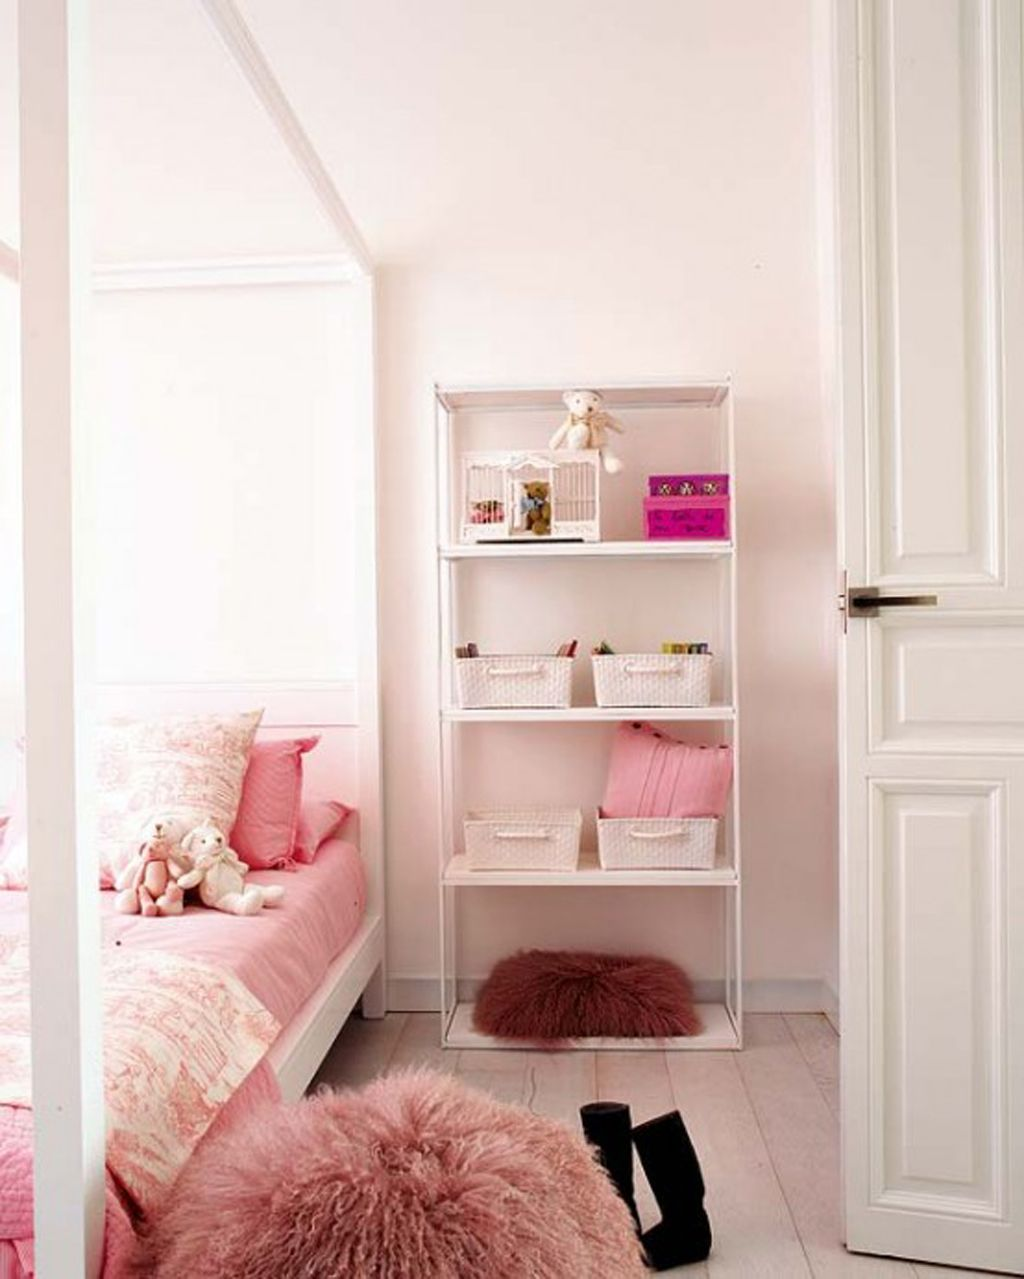 Interior Decorating Ideas For Small Bedroom Woman Bedroom Small Room Design Teenage Girl Bedroom Designs Small bedroom ideas pink